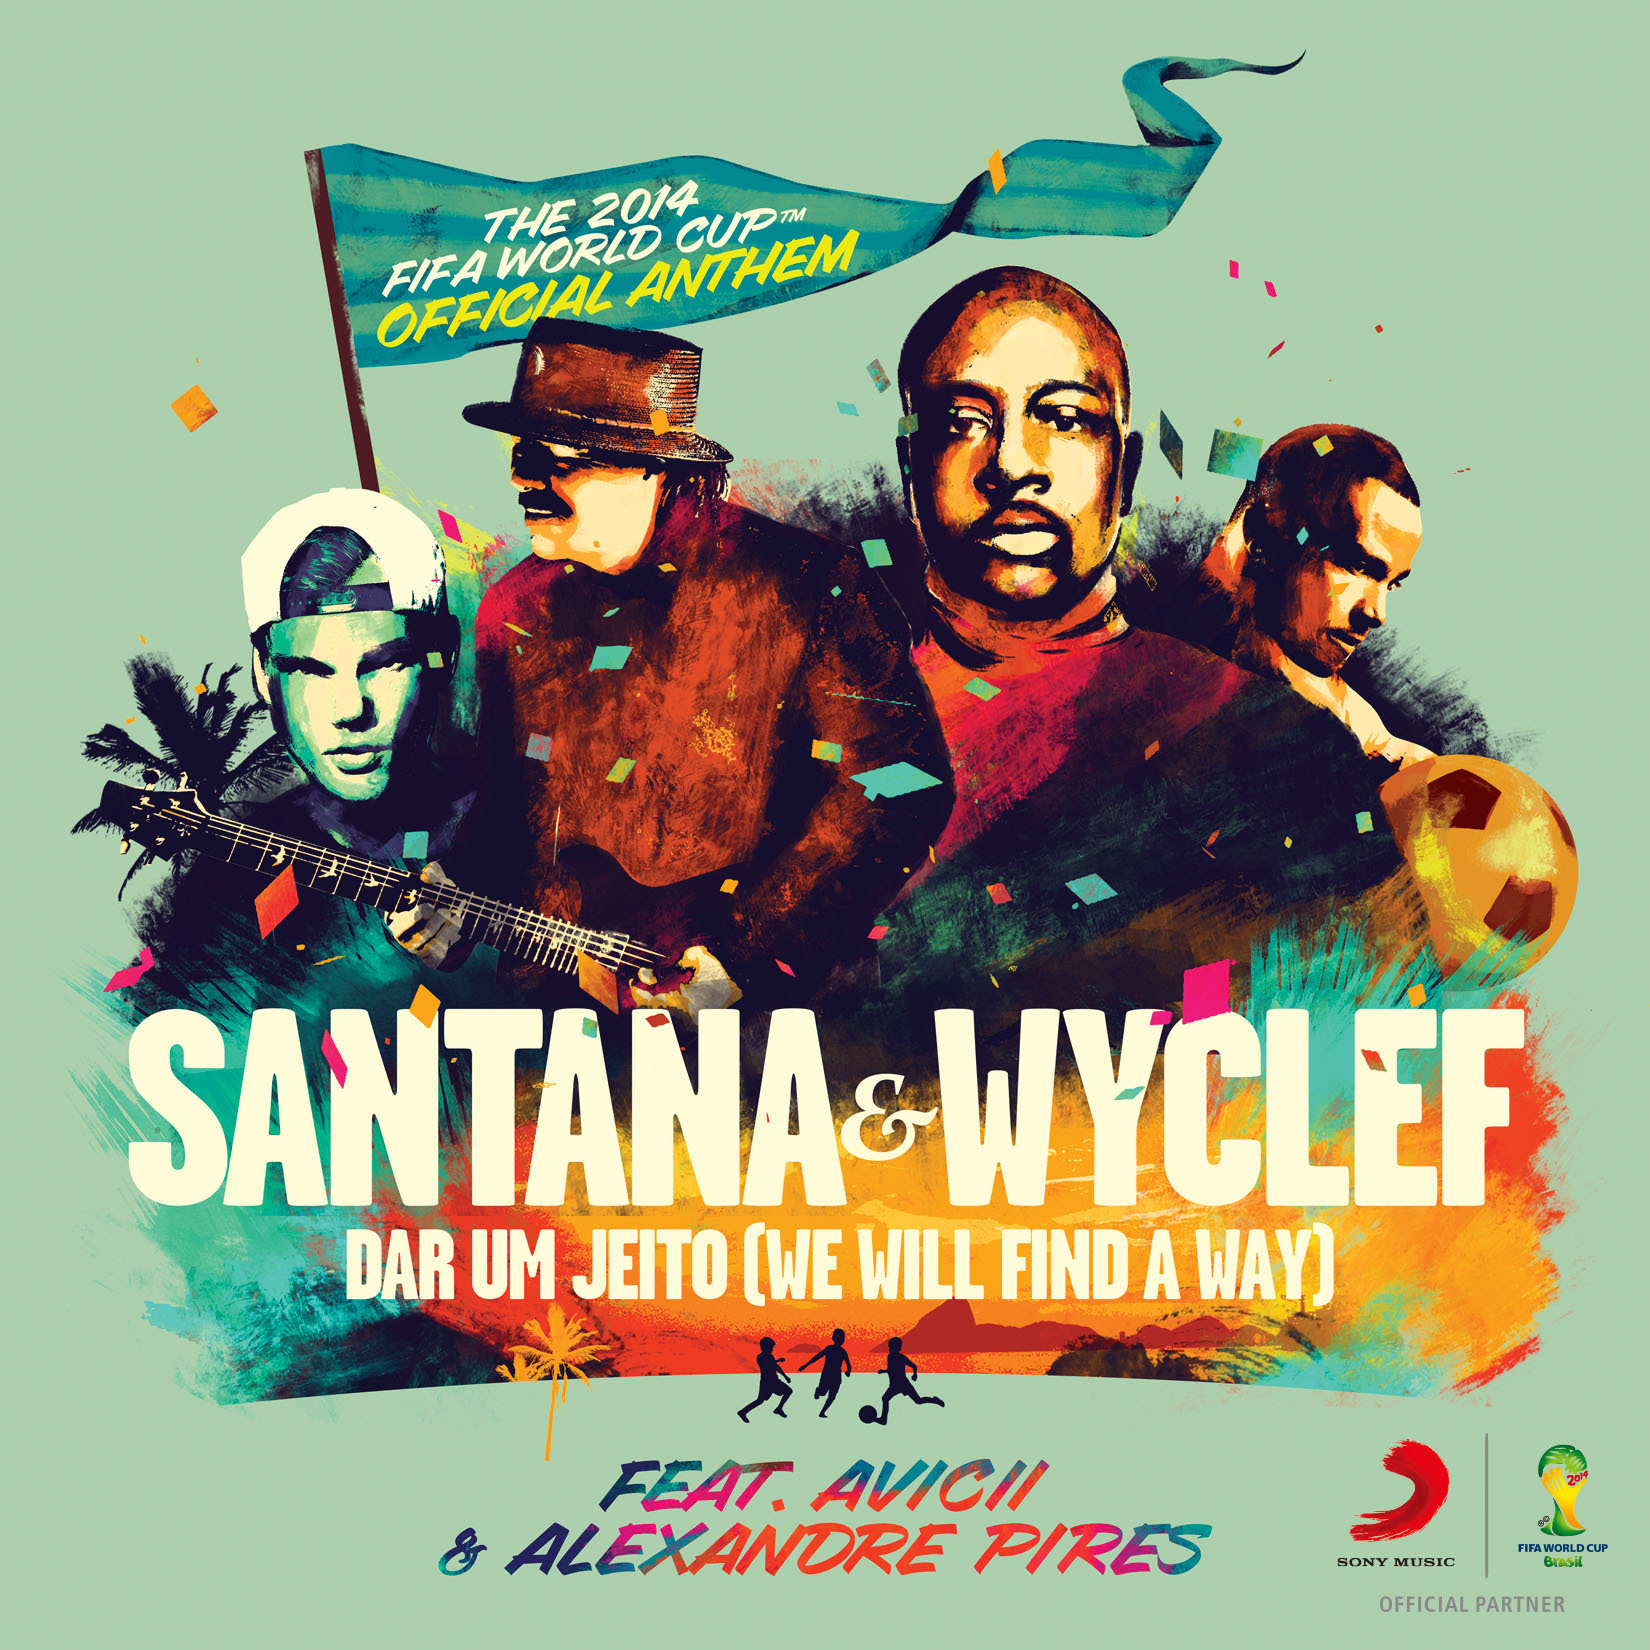 Santana, Wyclef, Avicii & More to Sing Official Anthem Of 2014 FIFA World Cup